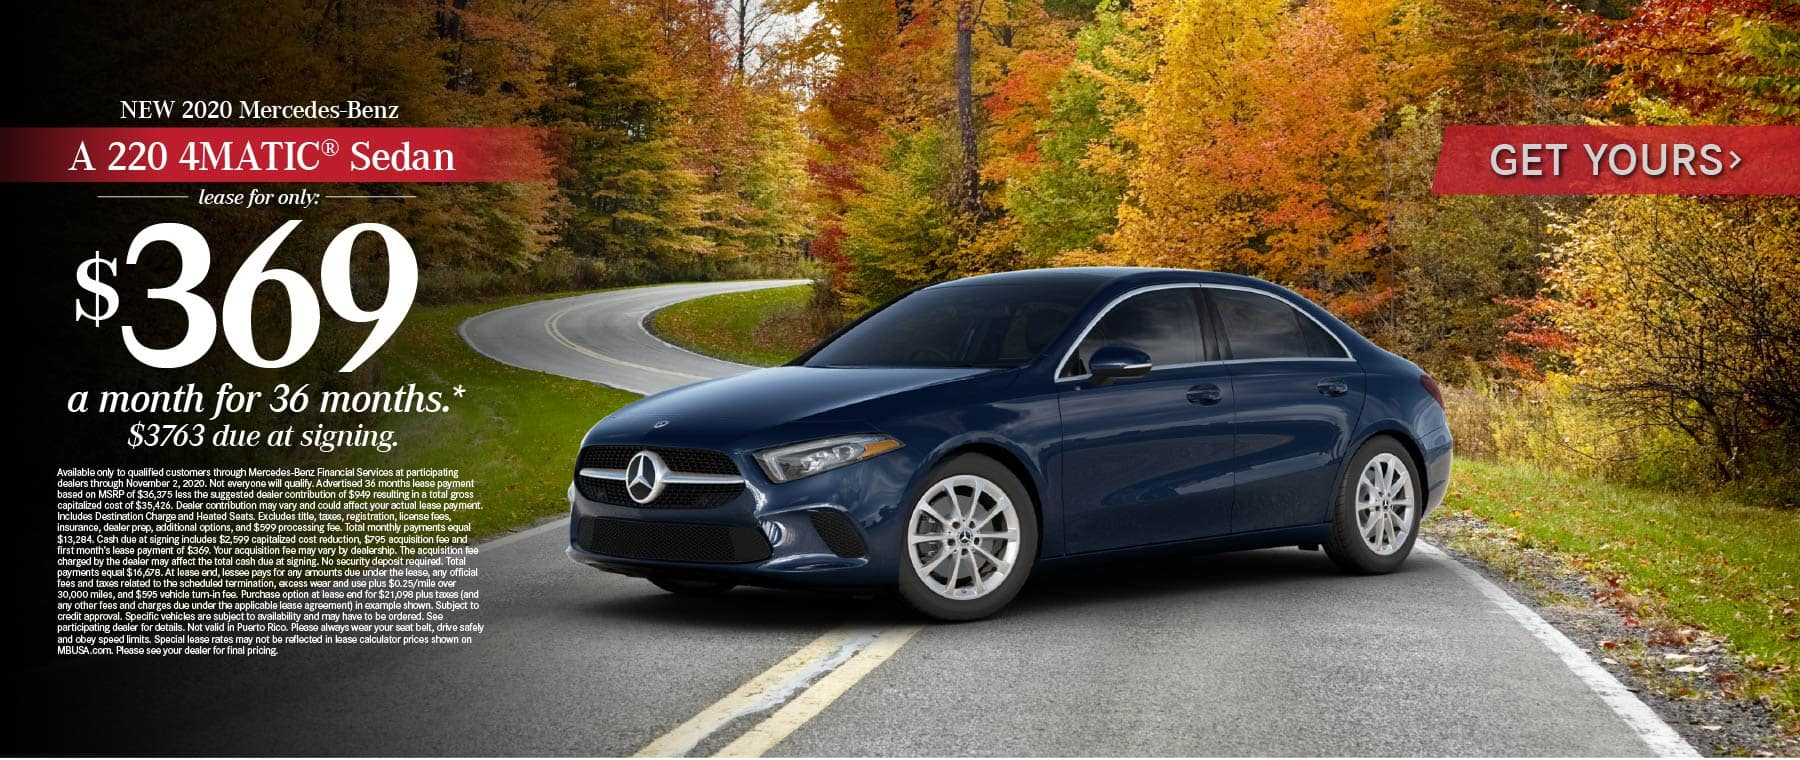 2020 Mercedes Benz A220 4MATIC Sedan lease for only: $369 a month for 36 months* Get Yours.